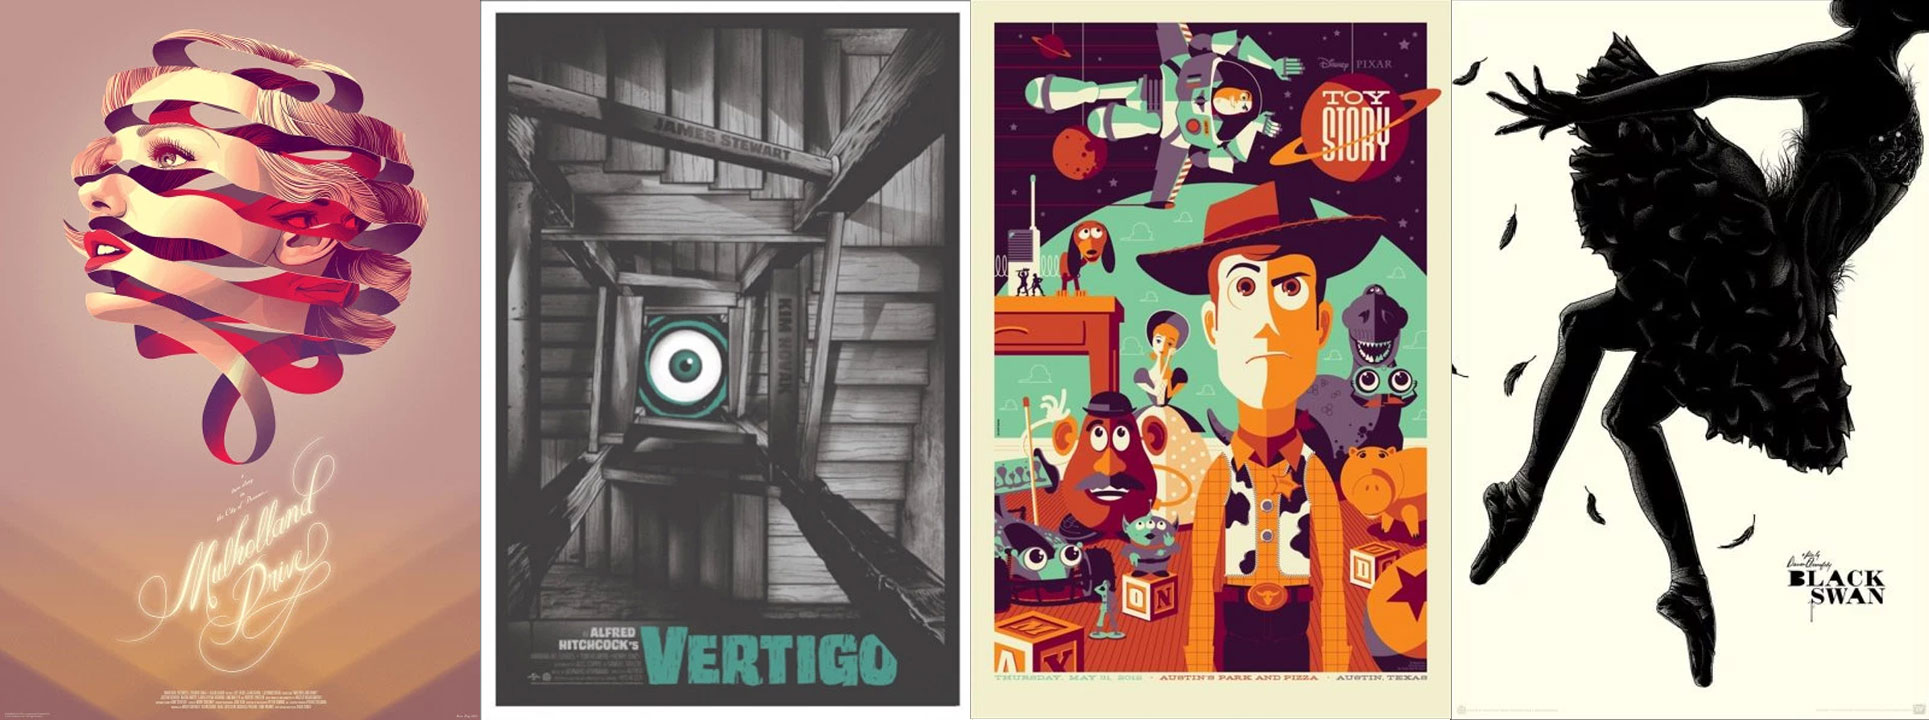 Some of my favorite Mondo posters, various artists